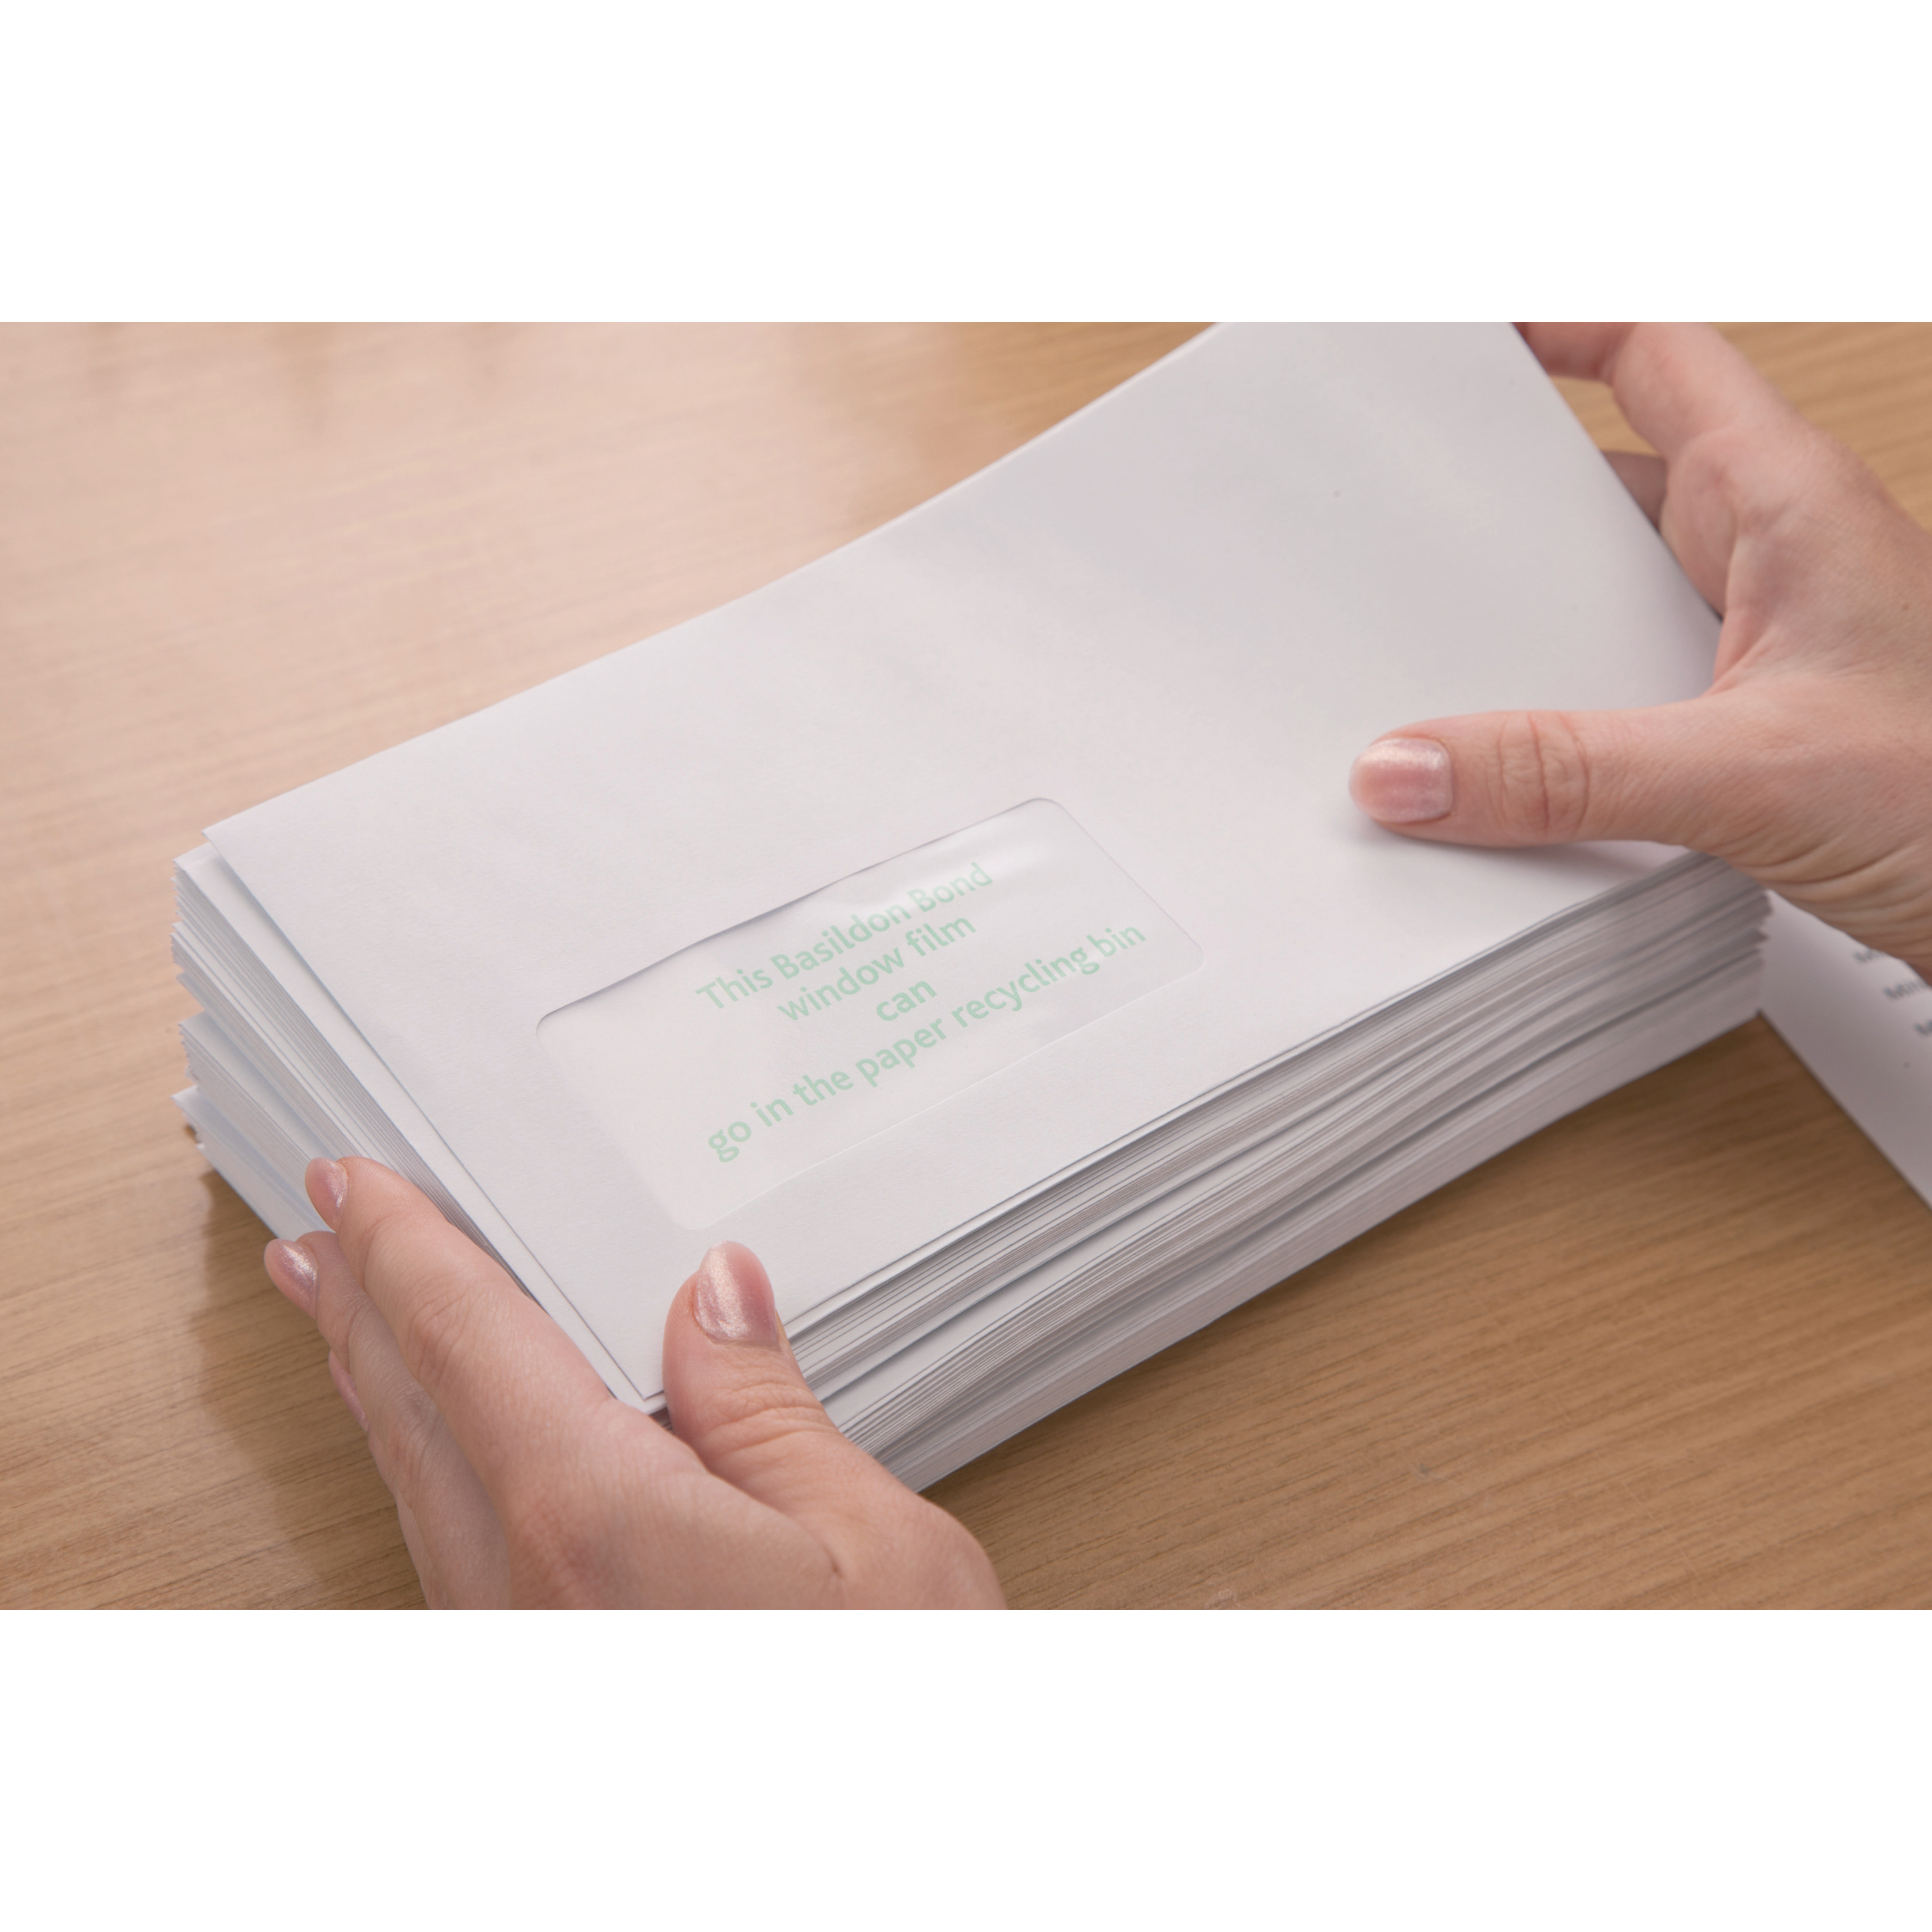 Basildon Bond Envelopes Recycled Wallet P&S Window 120gsm DL White Ref A80117 Pack 500 PRIZE DRAW